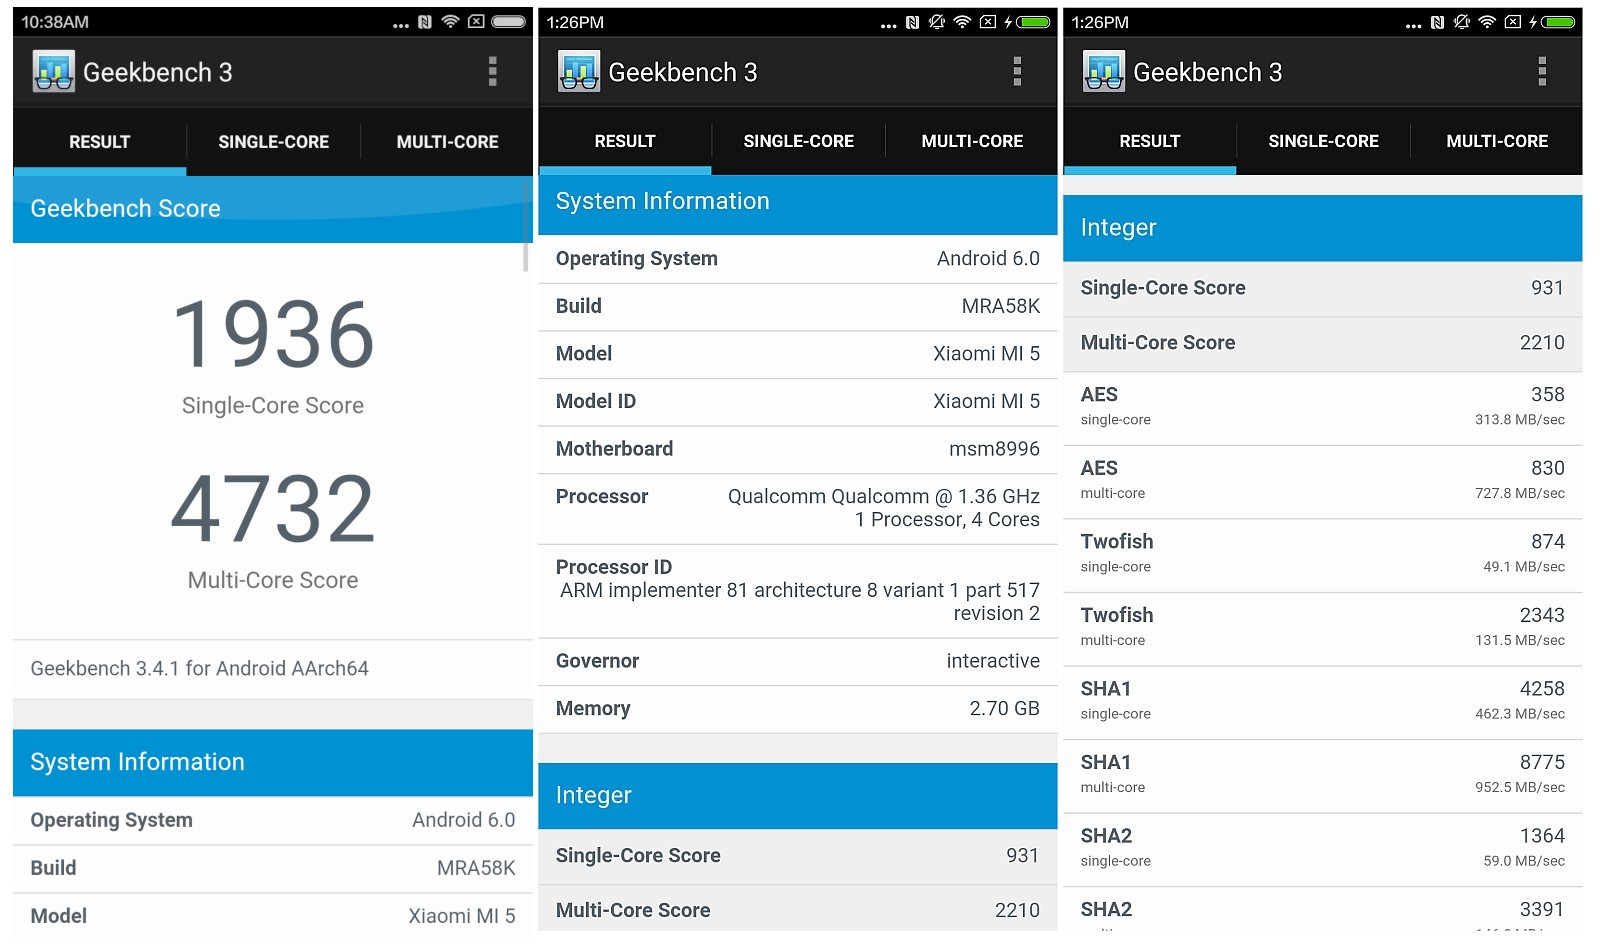 geekbench_screen